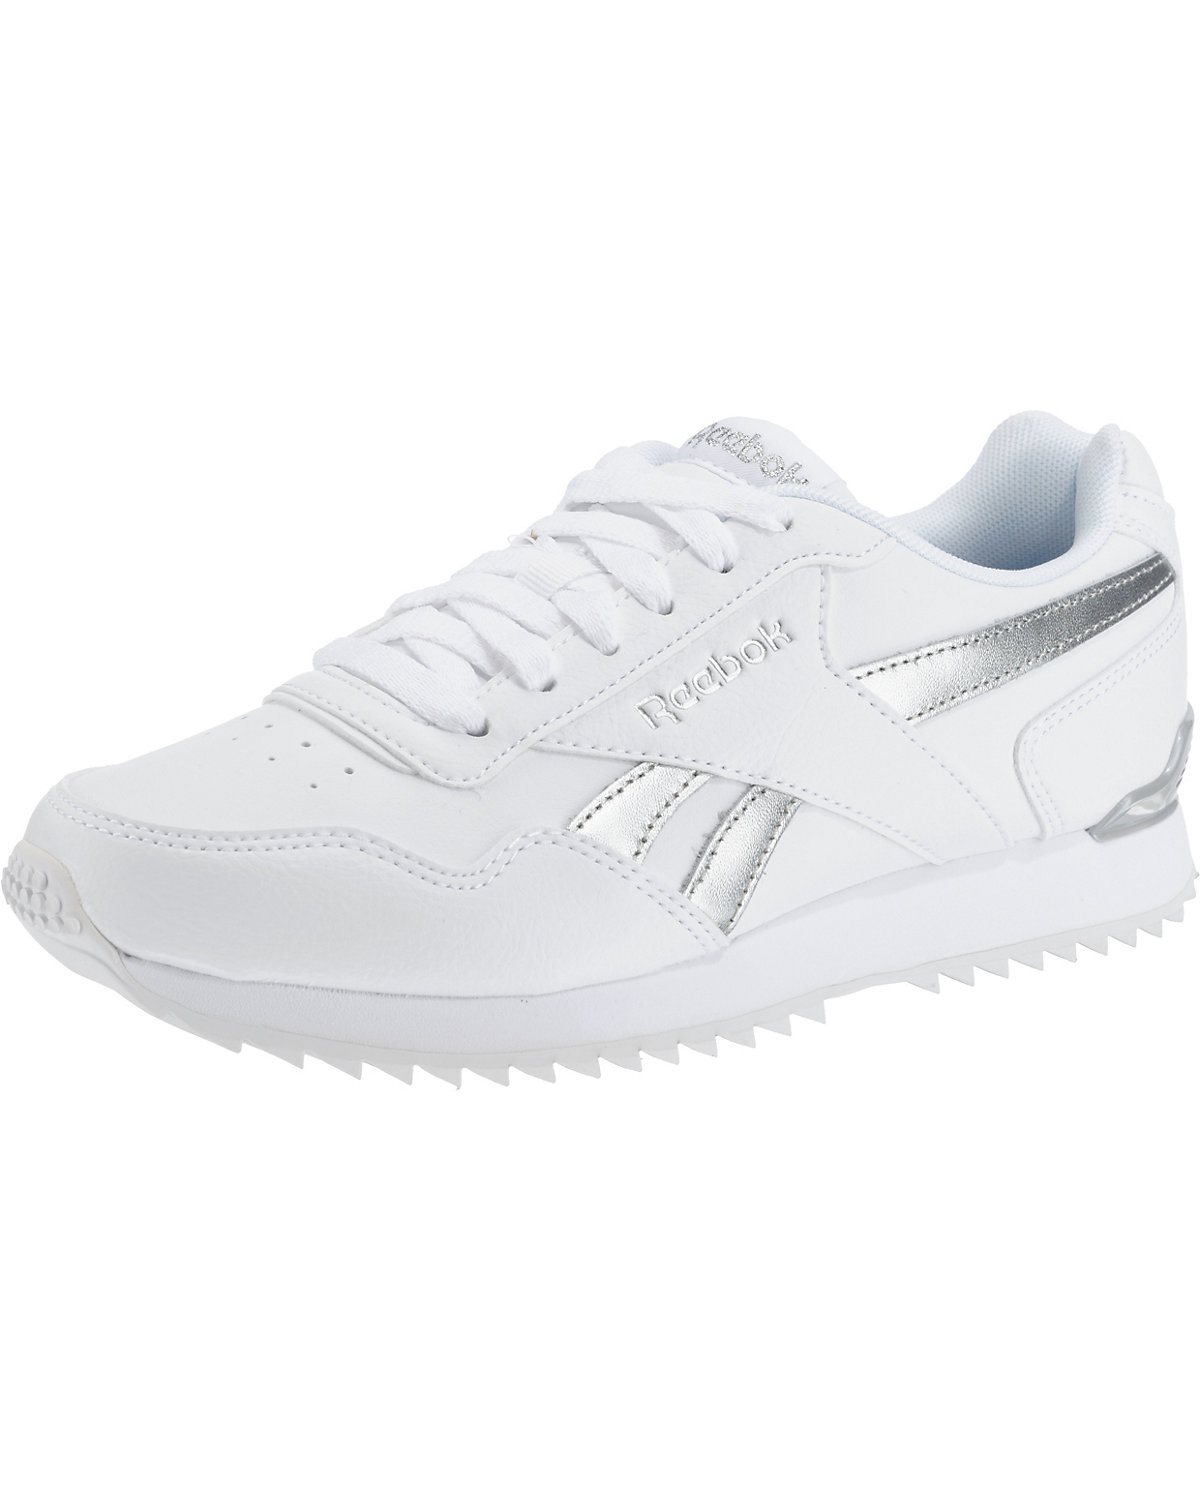 Reebok, ROYAL GLIDE RPLCLP Sneakers Low, weiß